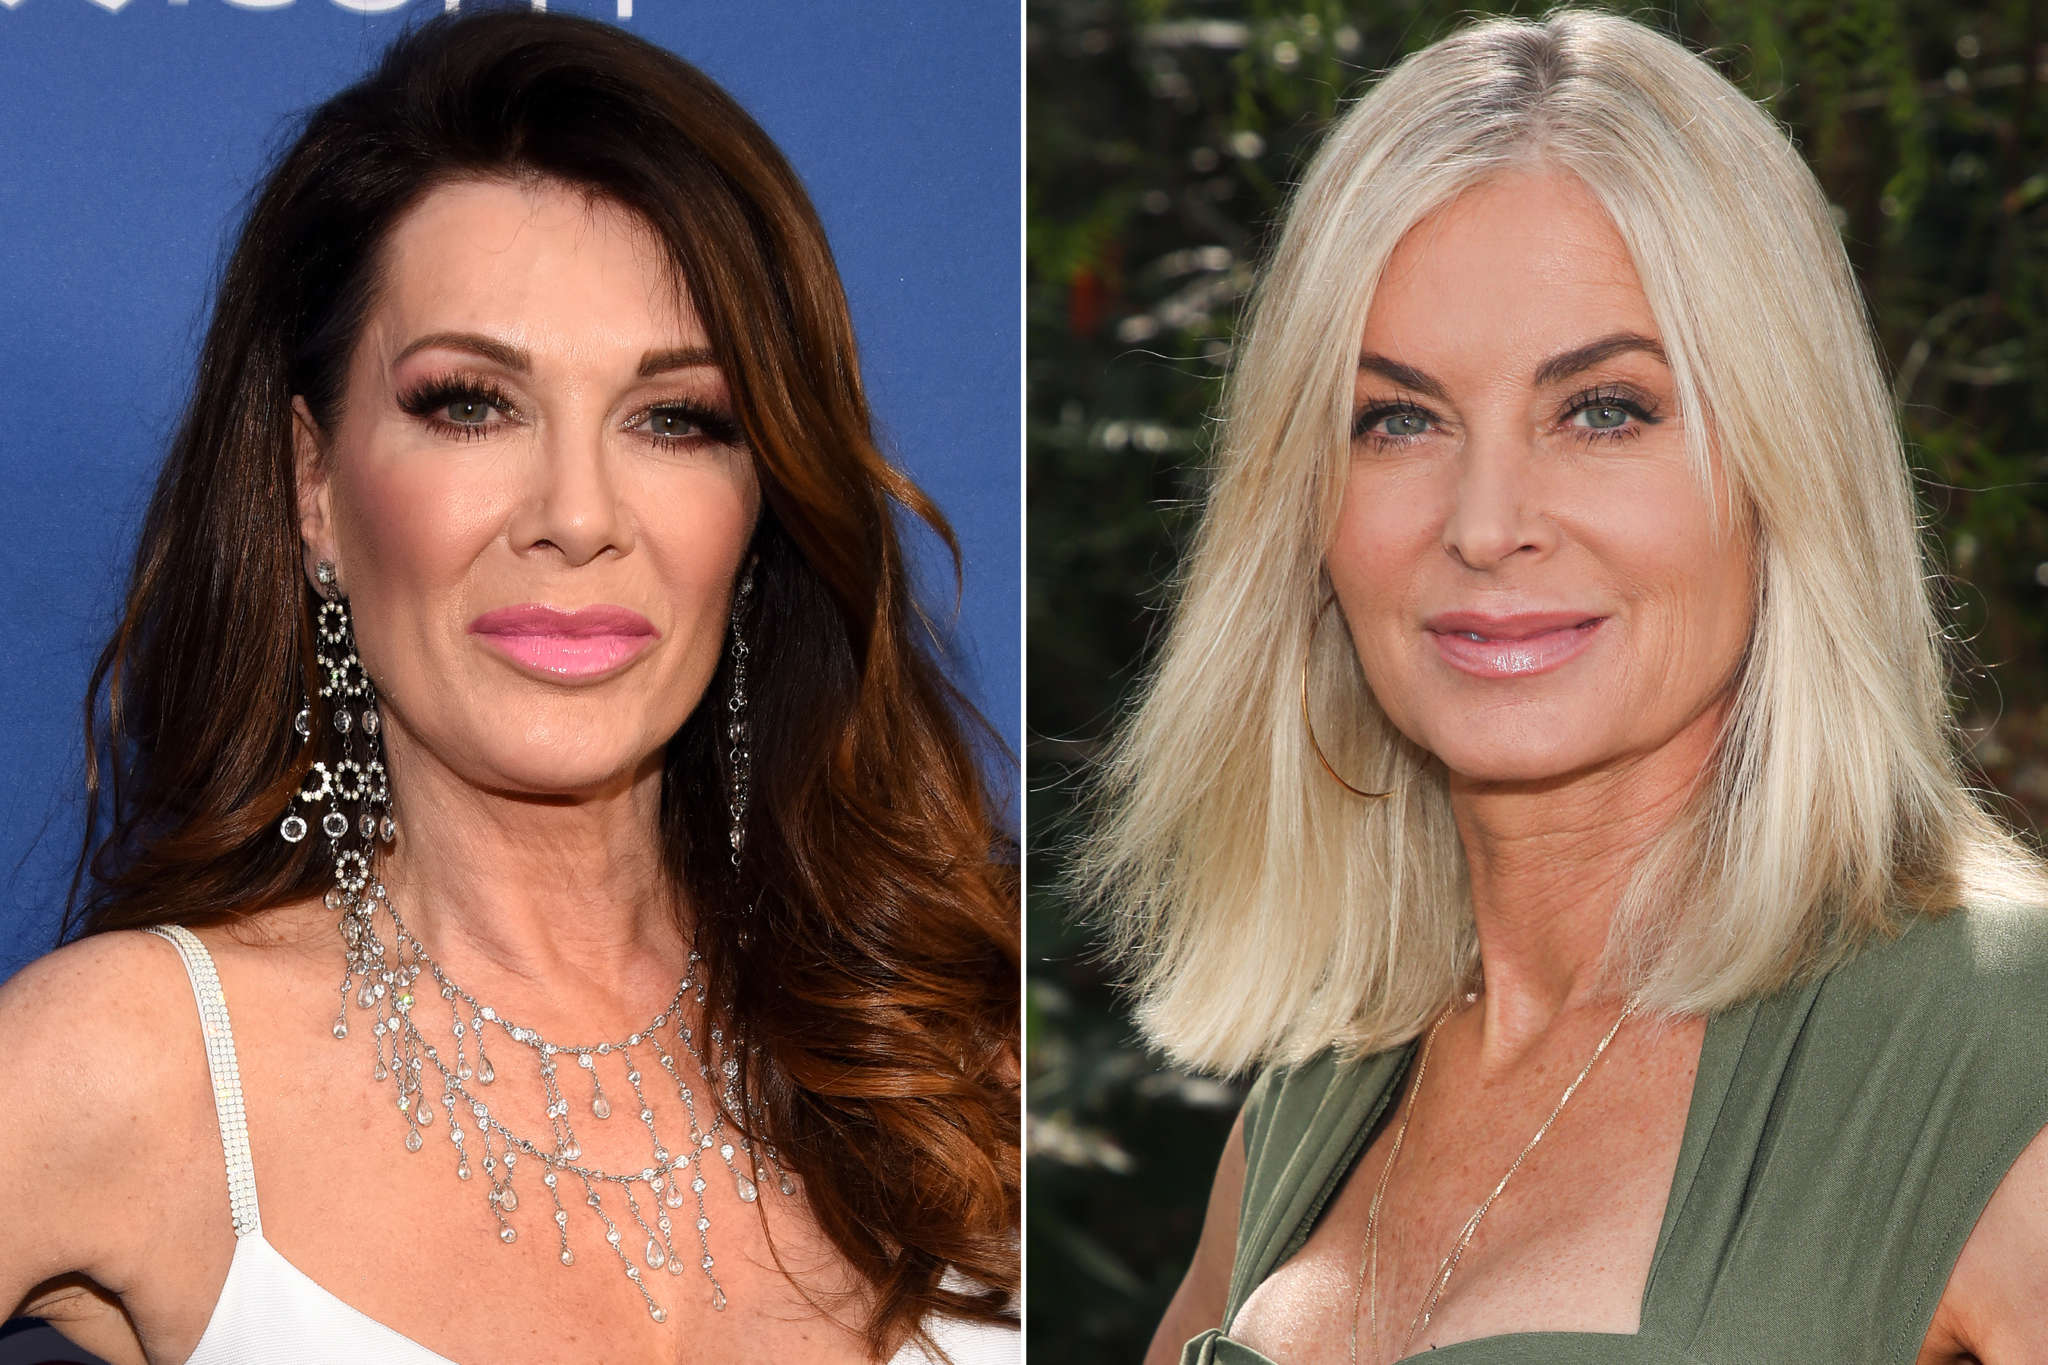 """""""eileen-davidson-claps-back-at-lisa-vanderpump-for-saying-she-was-fired-from-rhobh-what-is-the-truth"""""""